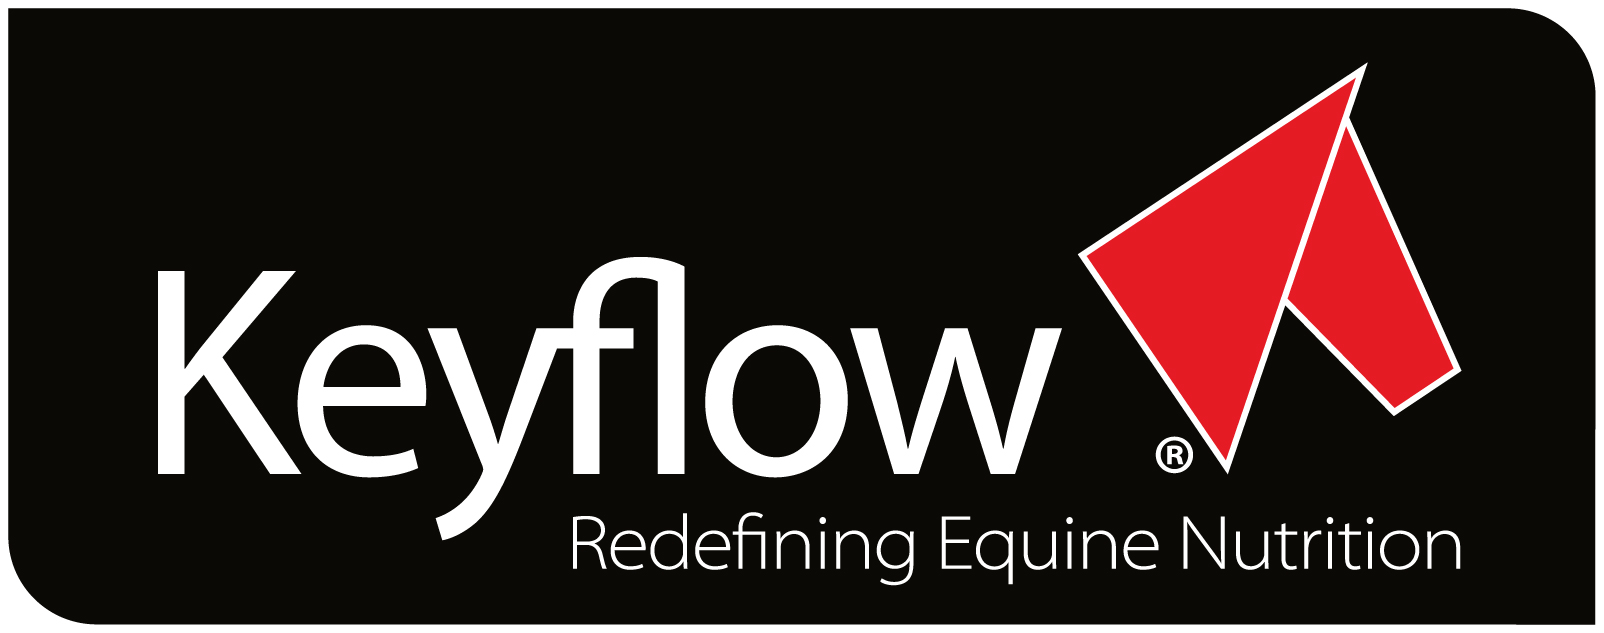 Keyflow (UK) Ltd :  Redefining Equine Nutrition